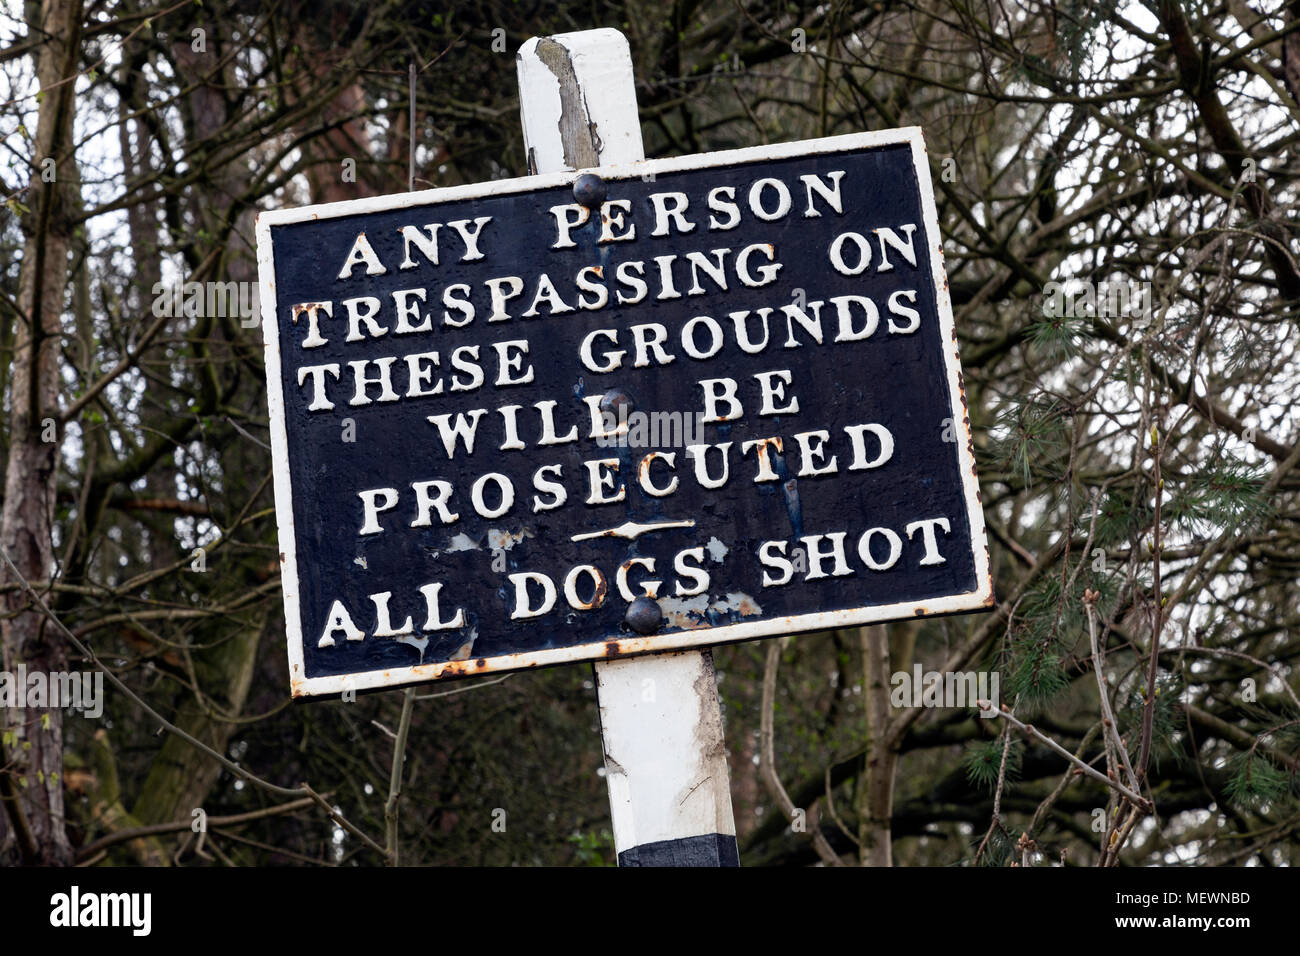 An old warning sign - No trespassing - Dogs will be shot - Stock Image